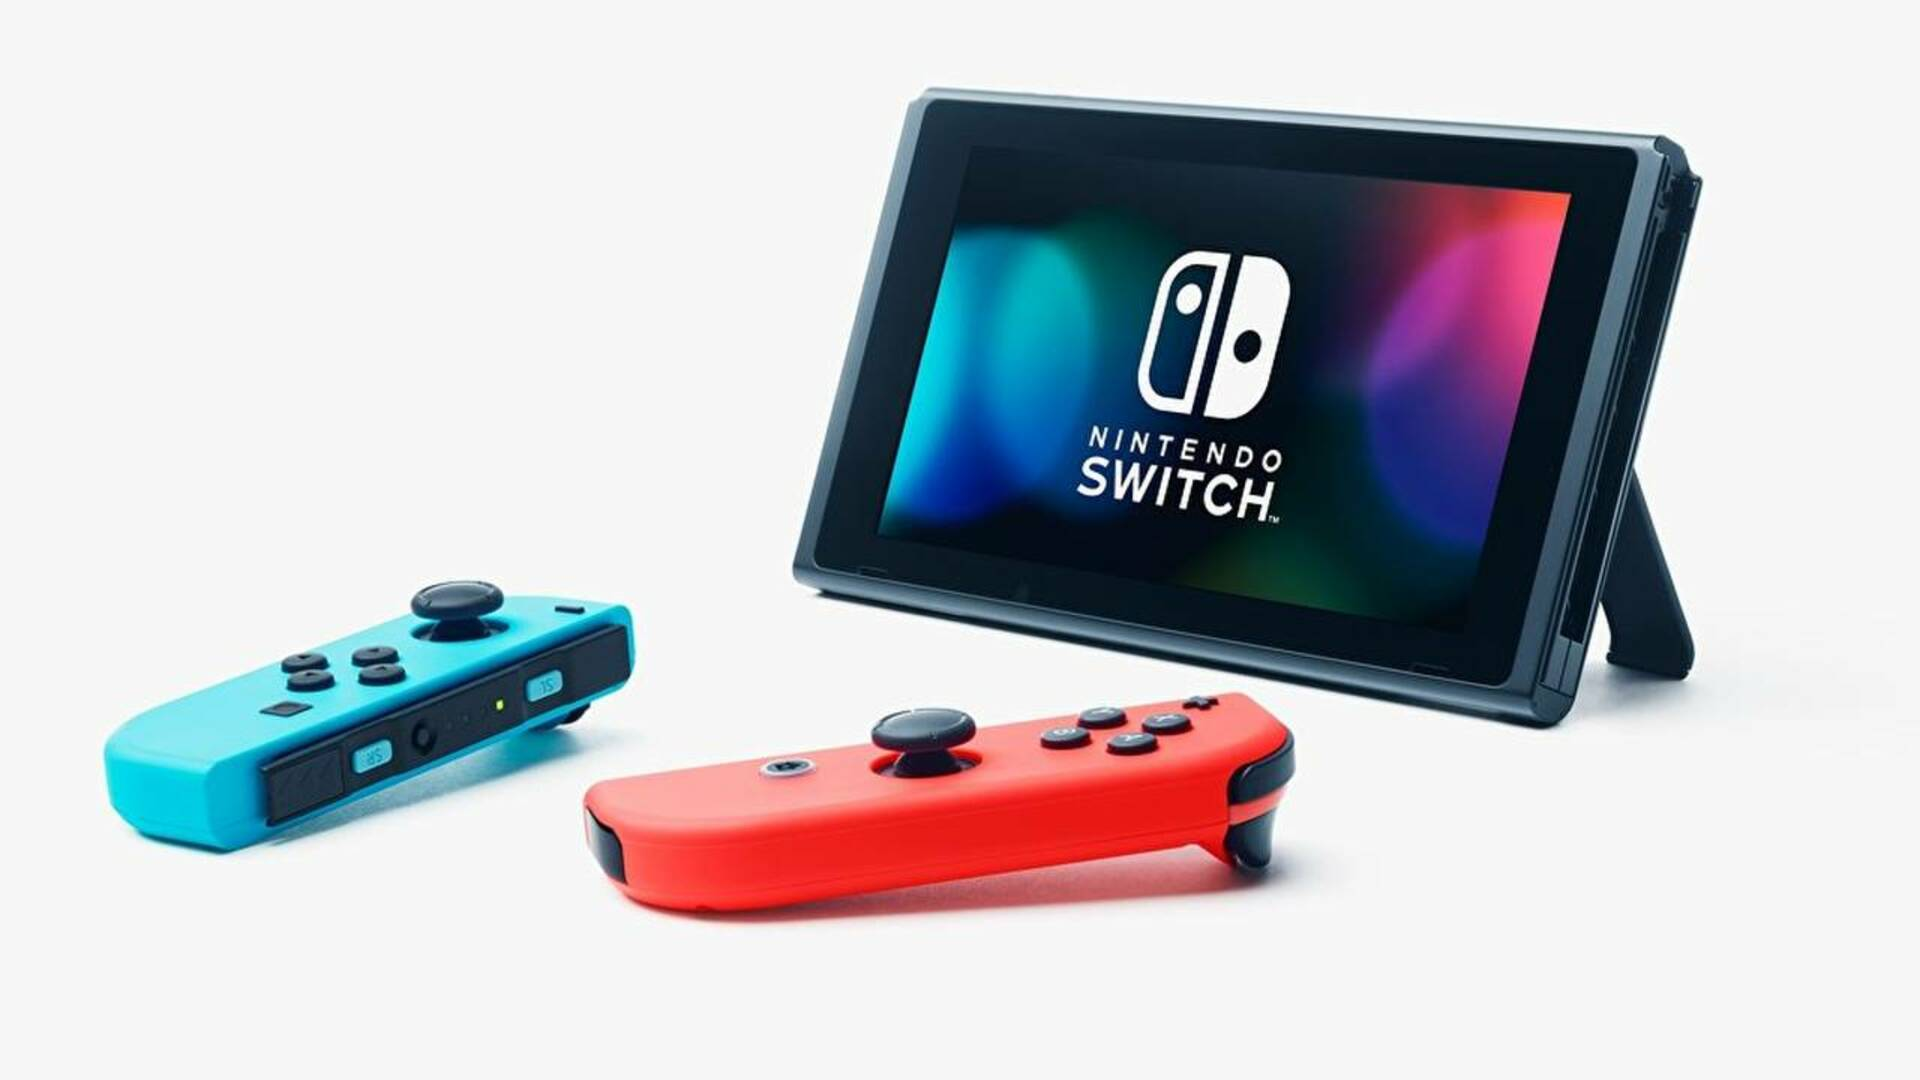 Nintendo Switch Surpasses PlayStation 4 Sales in Japan But